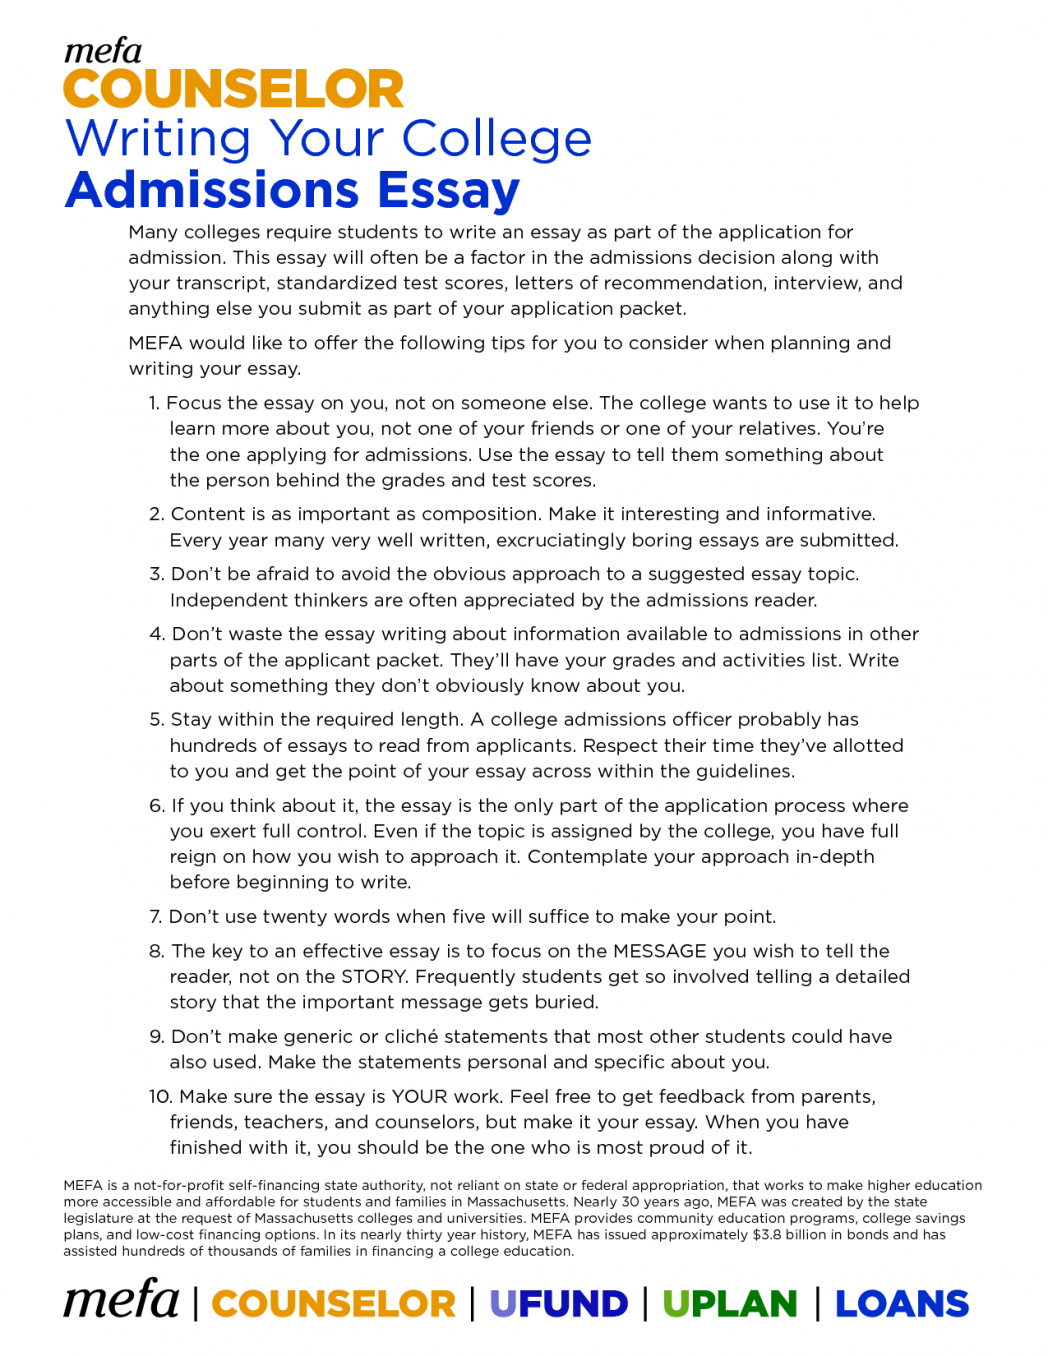 016 Essay Example College Writing Help High School How Many Paragraphs Should Application Wuaom Pages Words Long What About Formatted In Mla Format 1048x1356 Are An Unforgettable Introduction There Argumentative Full